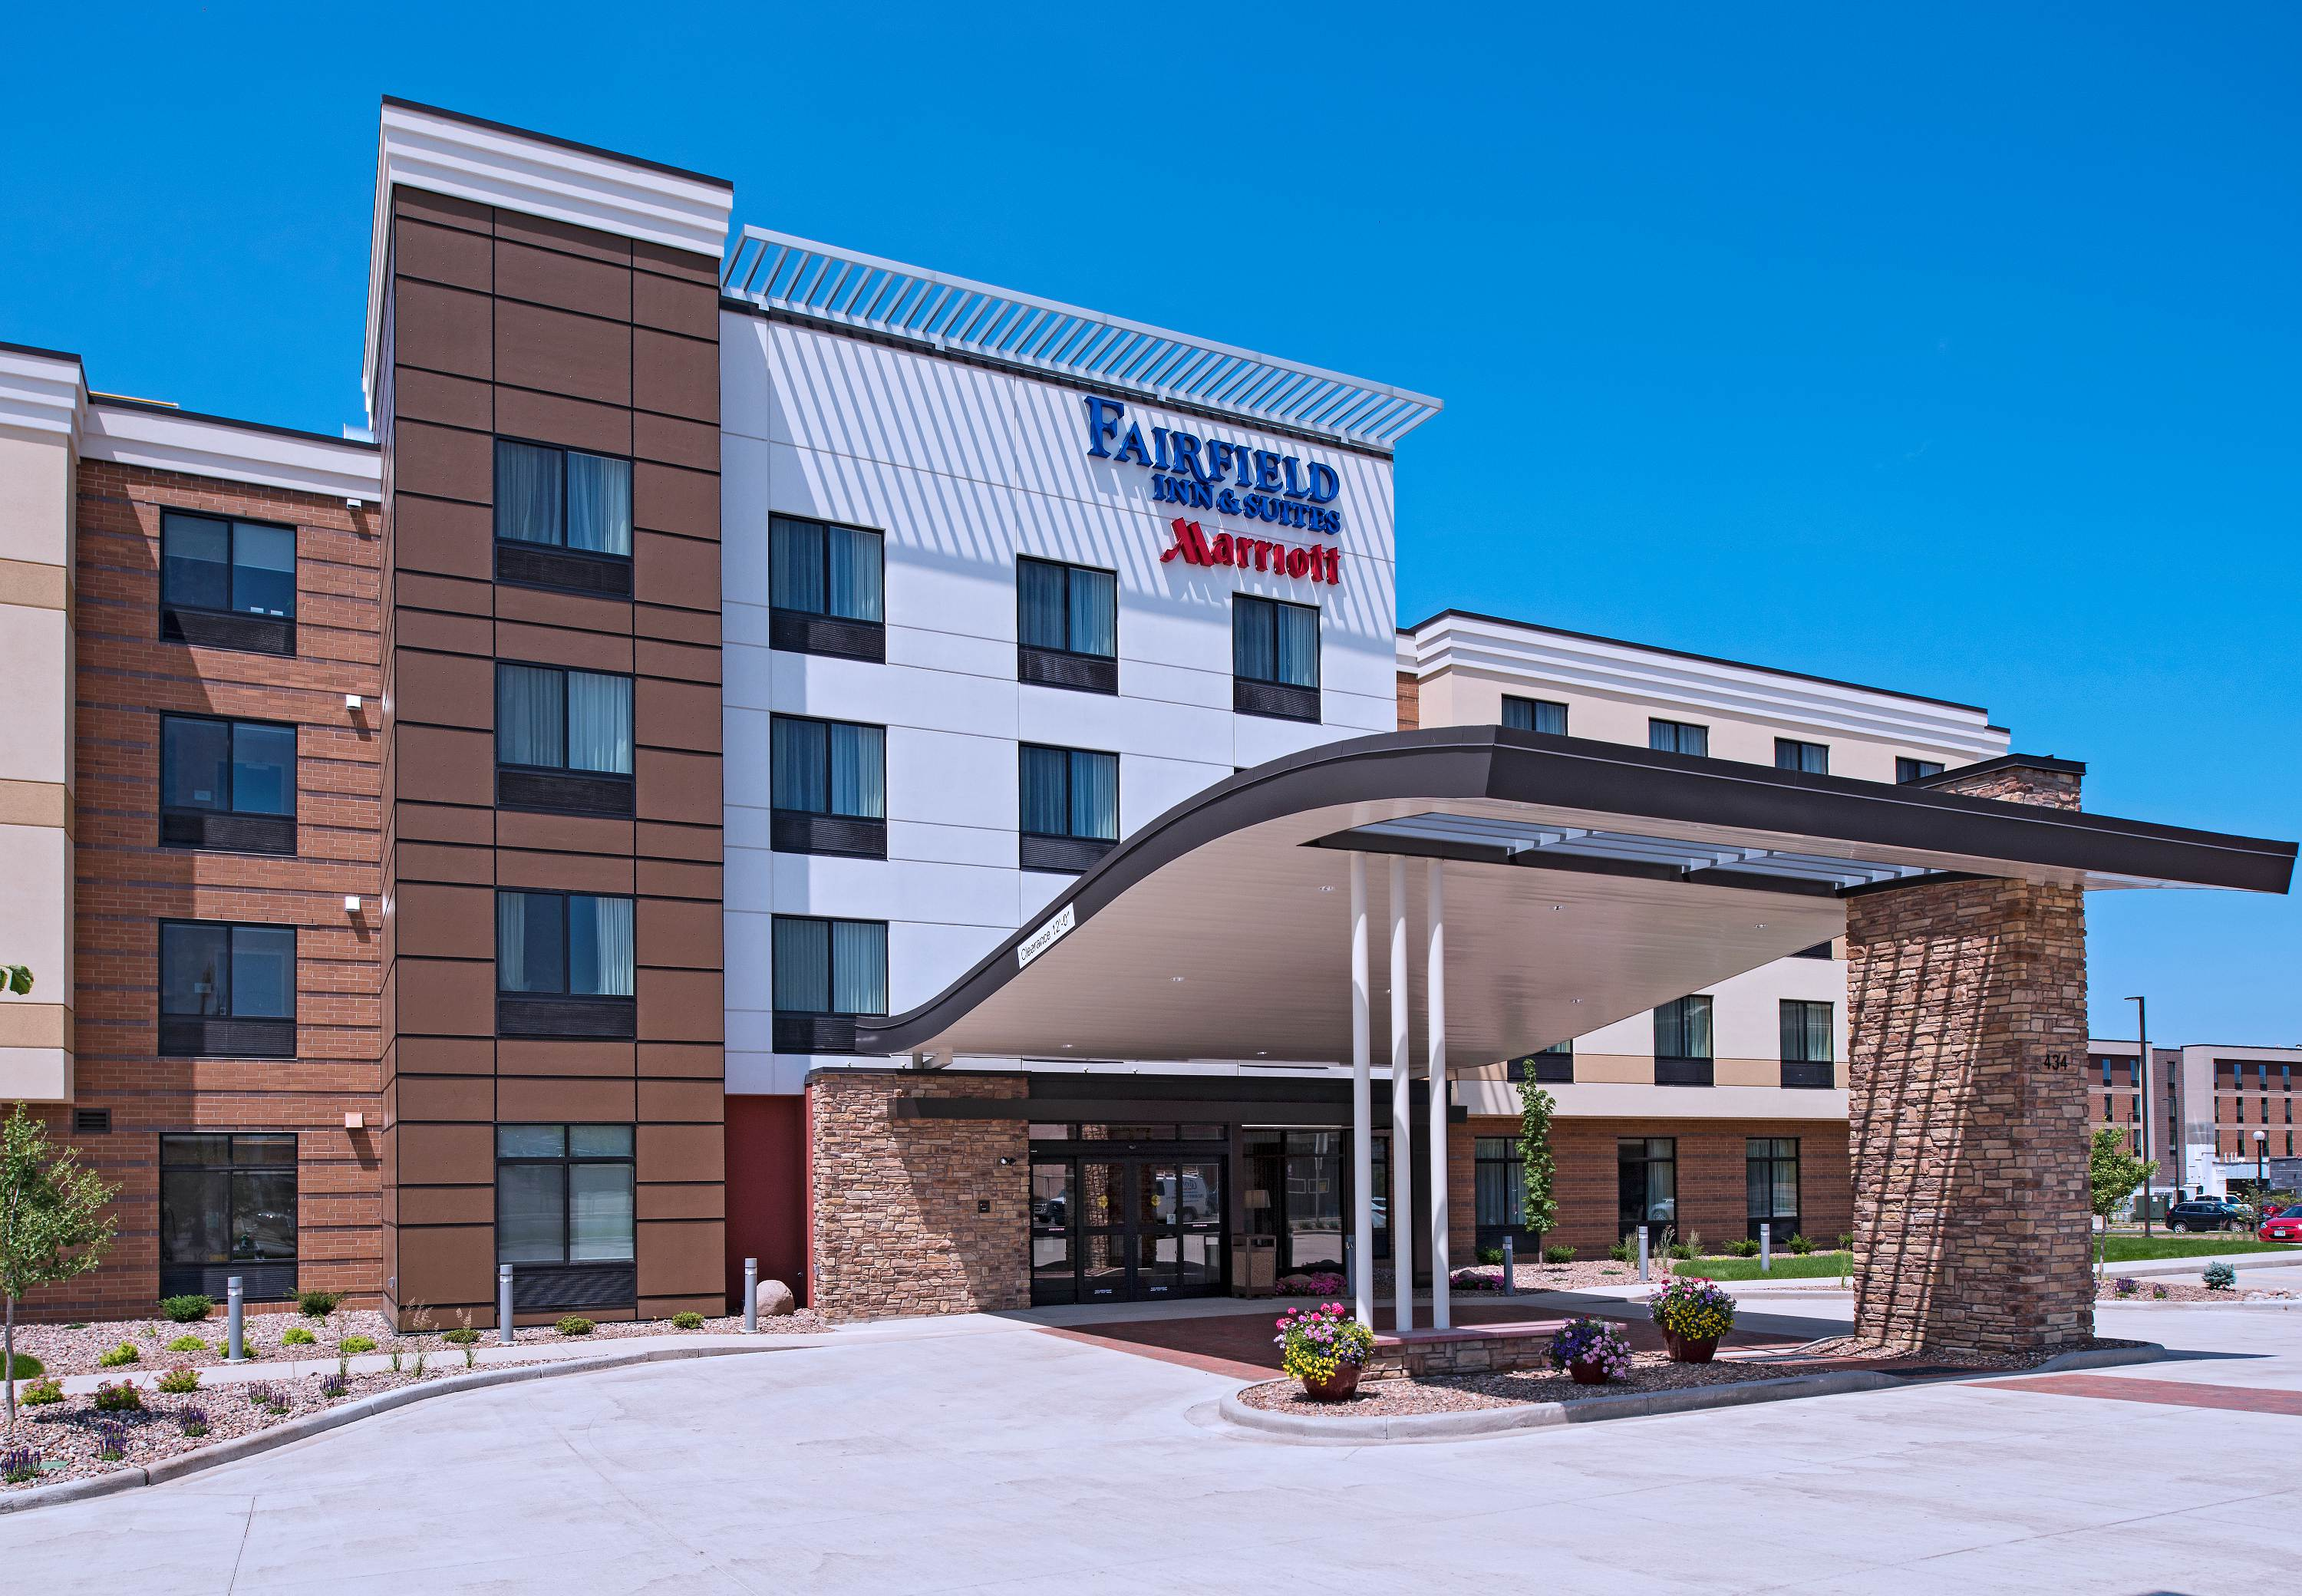 Fairfield Inn & Suites by Marriott La Crosse Downtown image 0